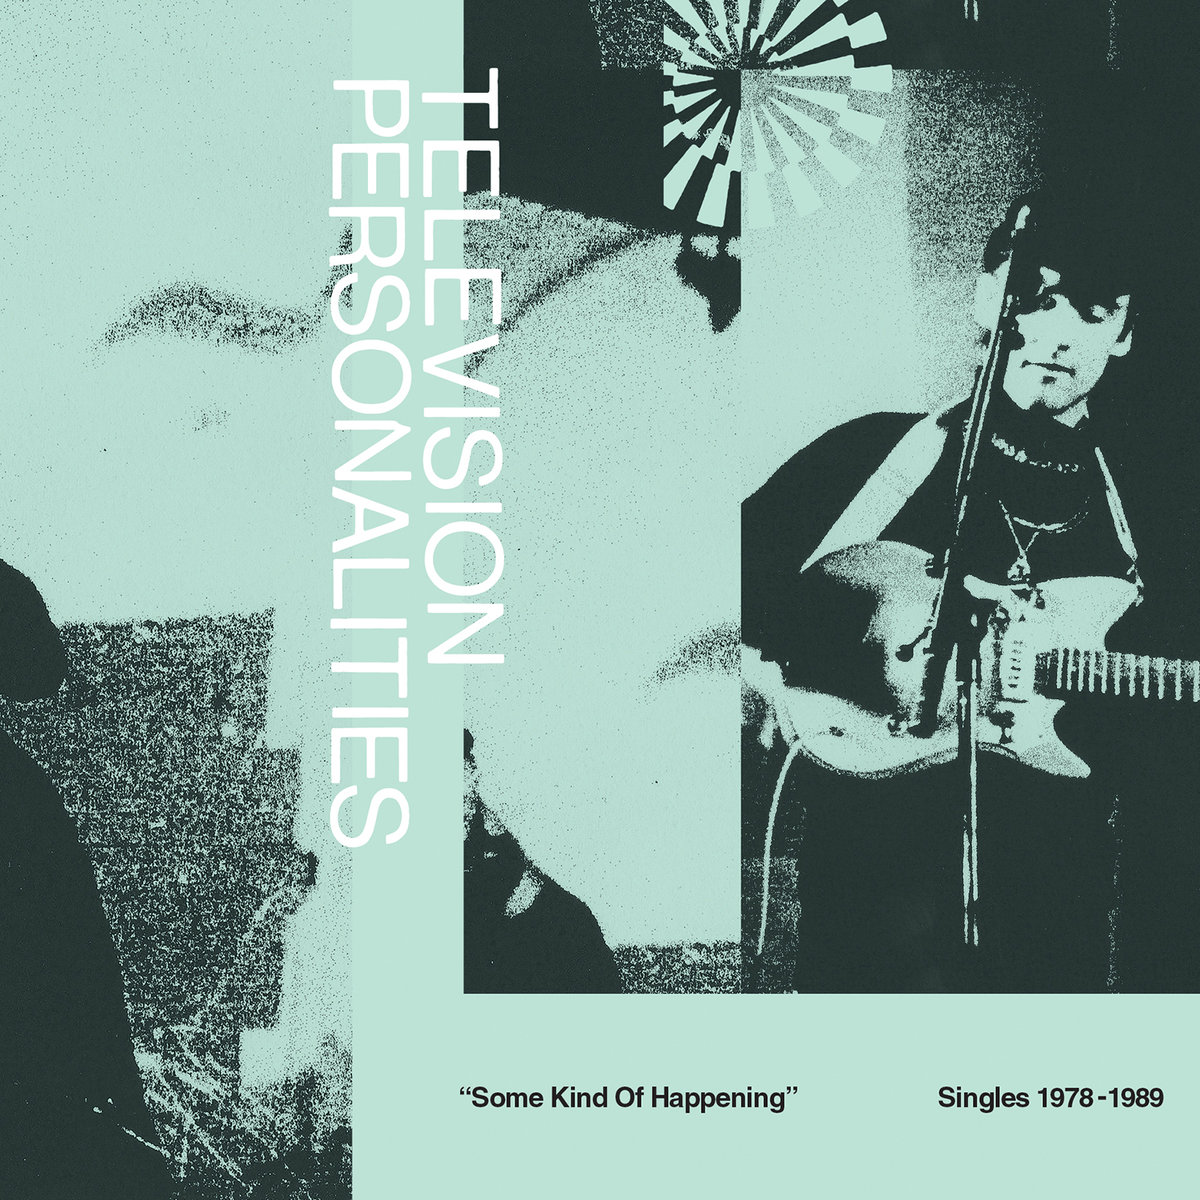 Television Personalities Some Kind Of Happening (Singles 1978-1989)